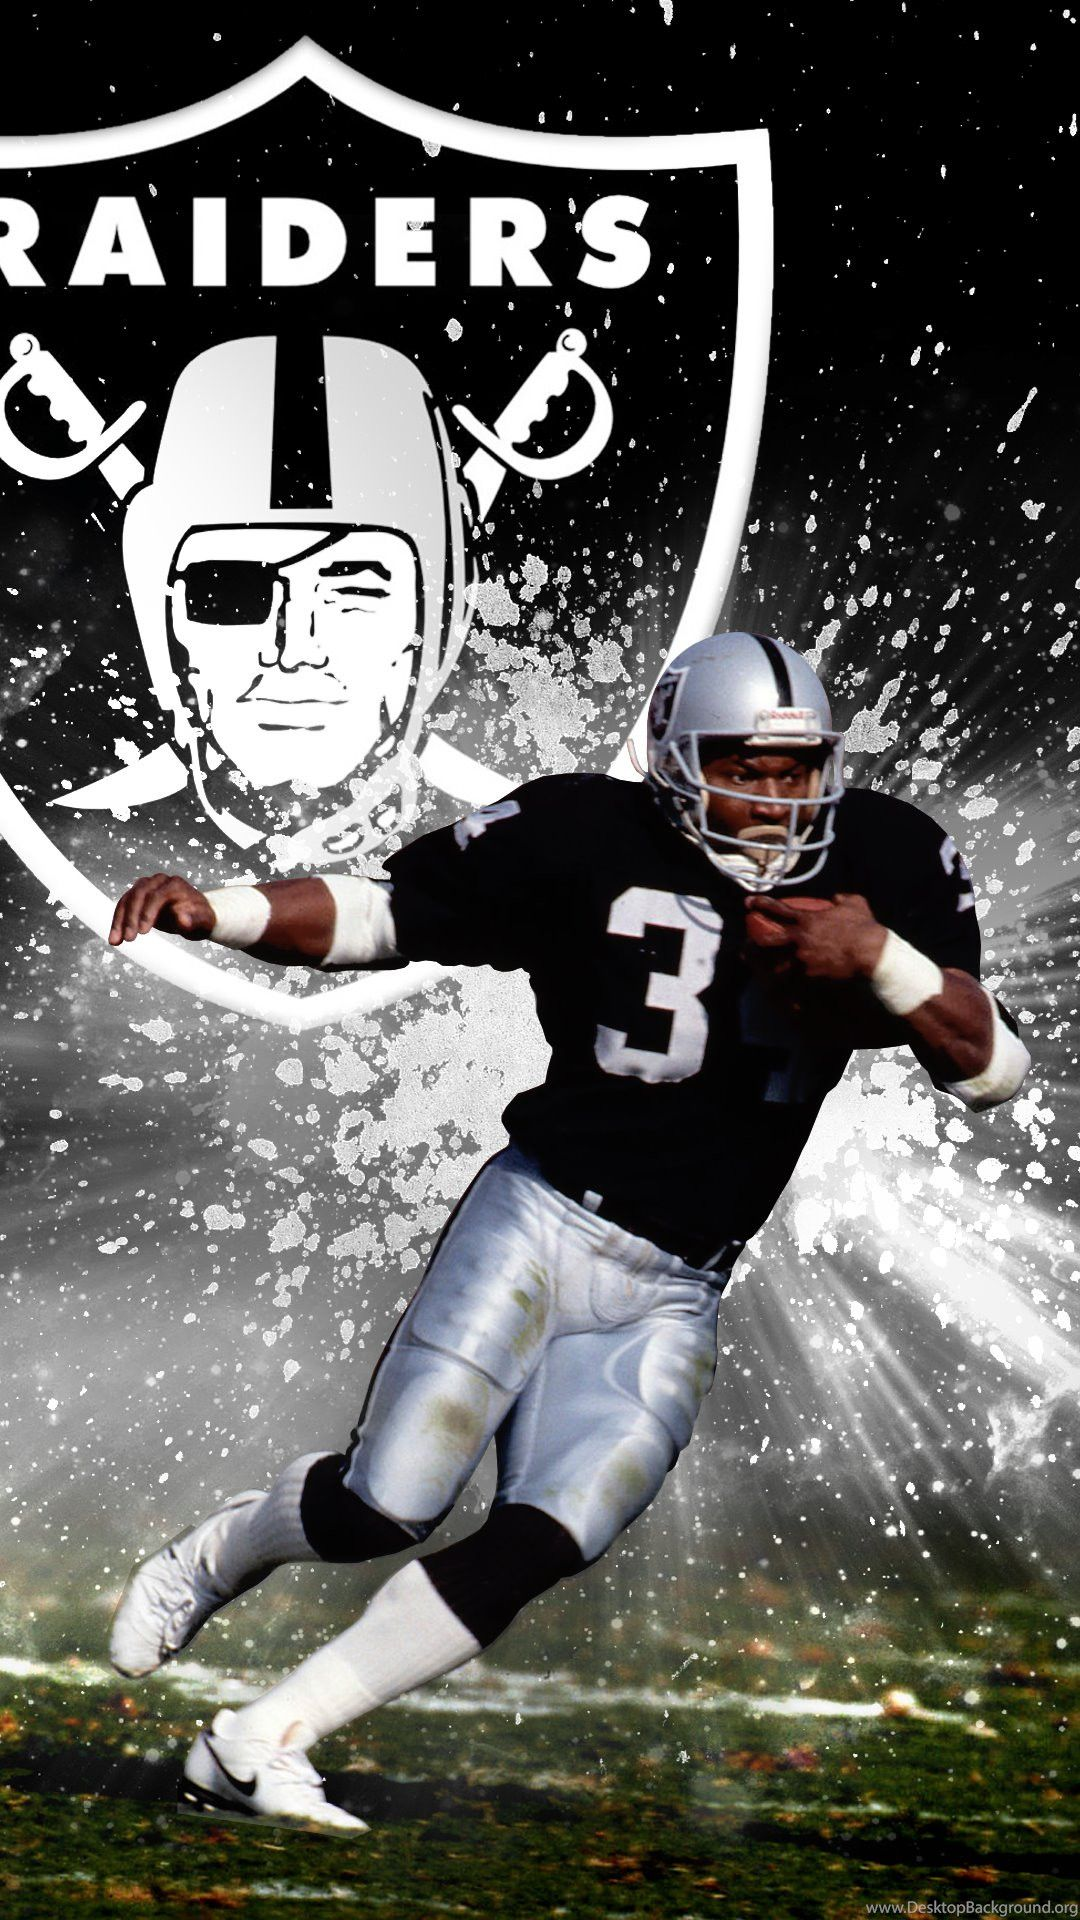 Raiders Picture in 2020 Raiders wallpaper, Iphone